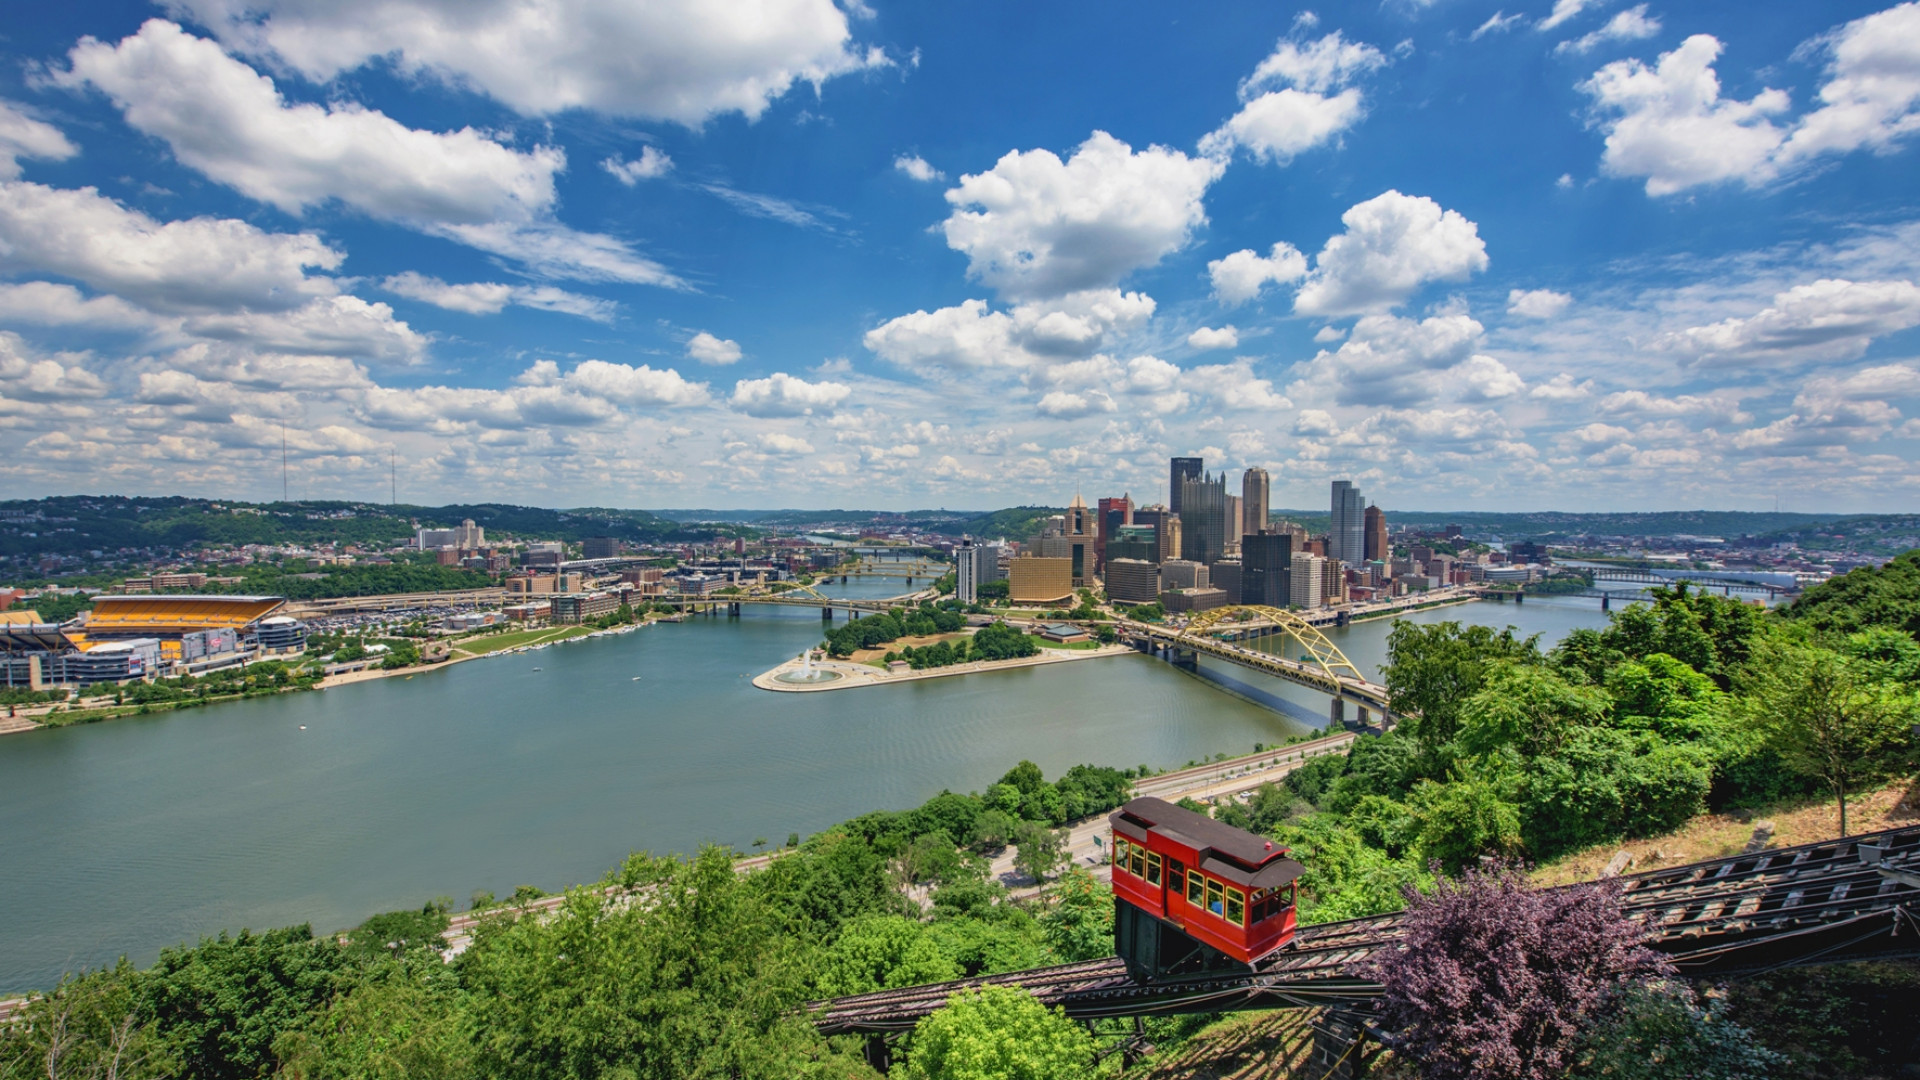 The Dusquesne Incline, Pittsburgh